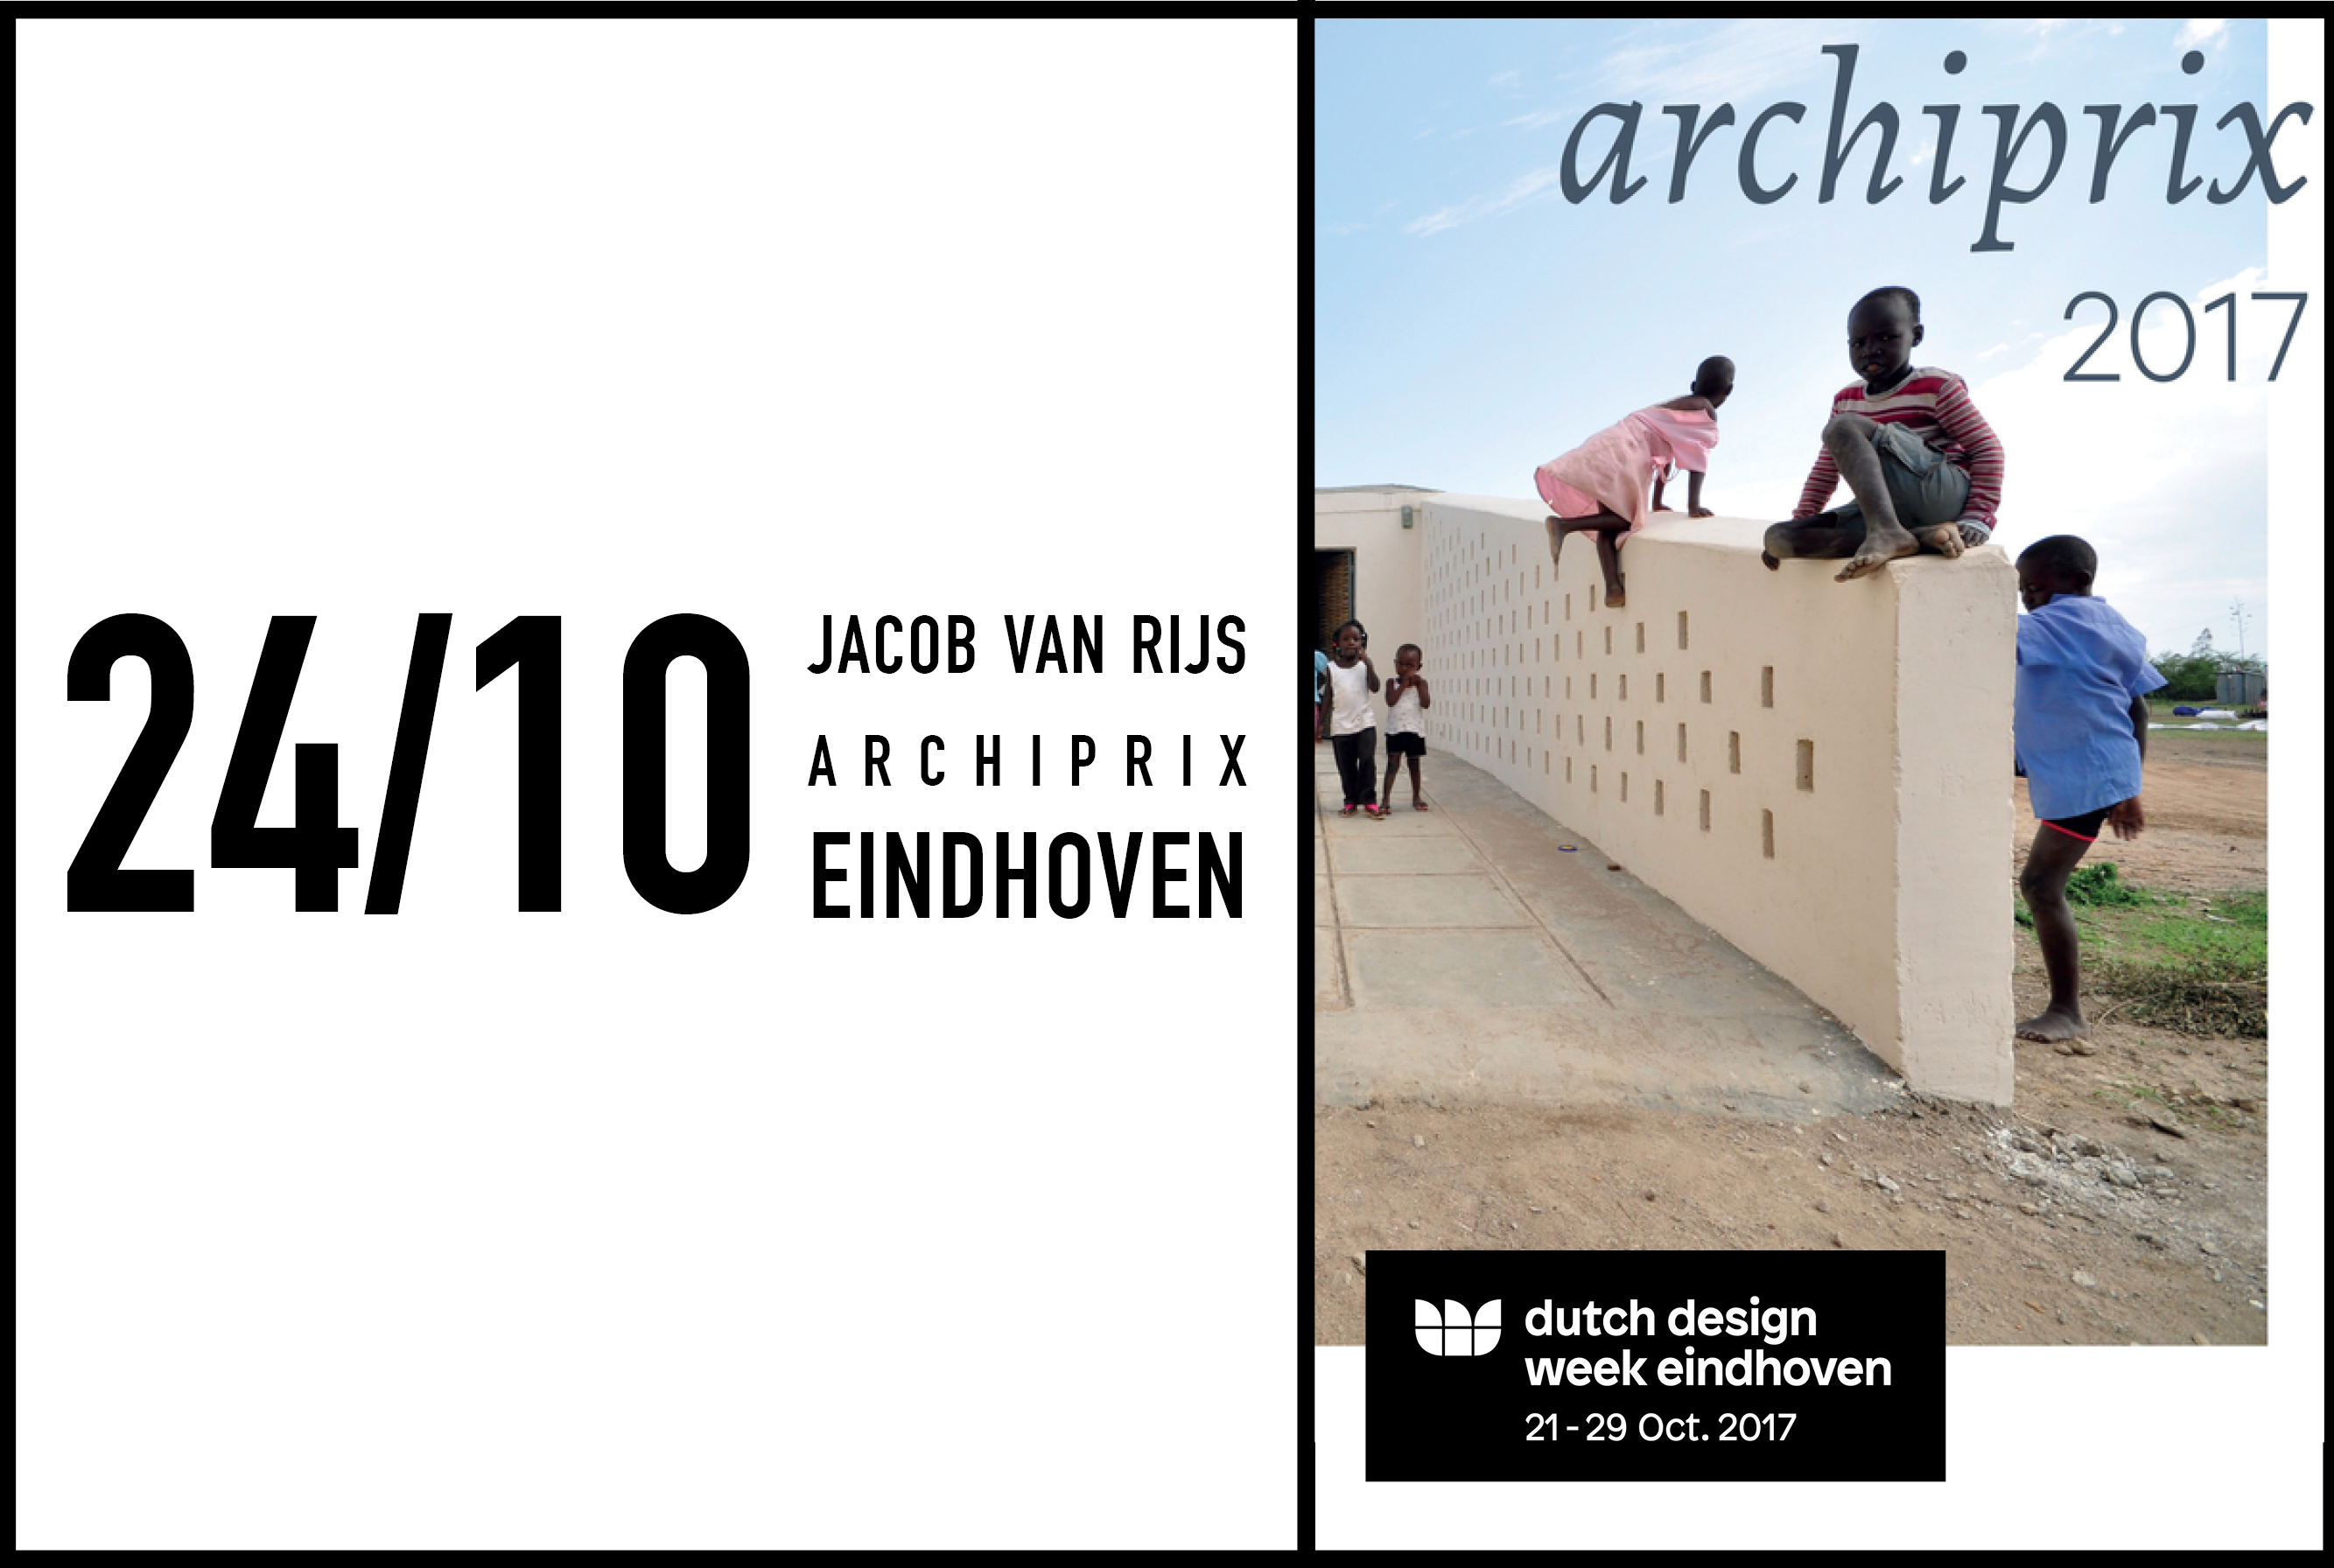 Archiprix exhibition opening with Chairman Jacob van Rijs at the Dutch Design Week '17, 24 October 2017